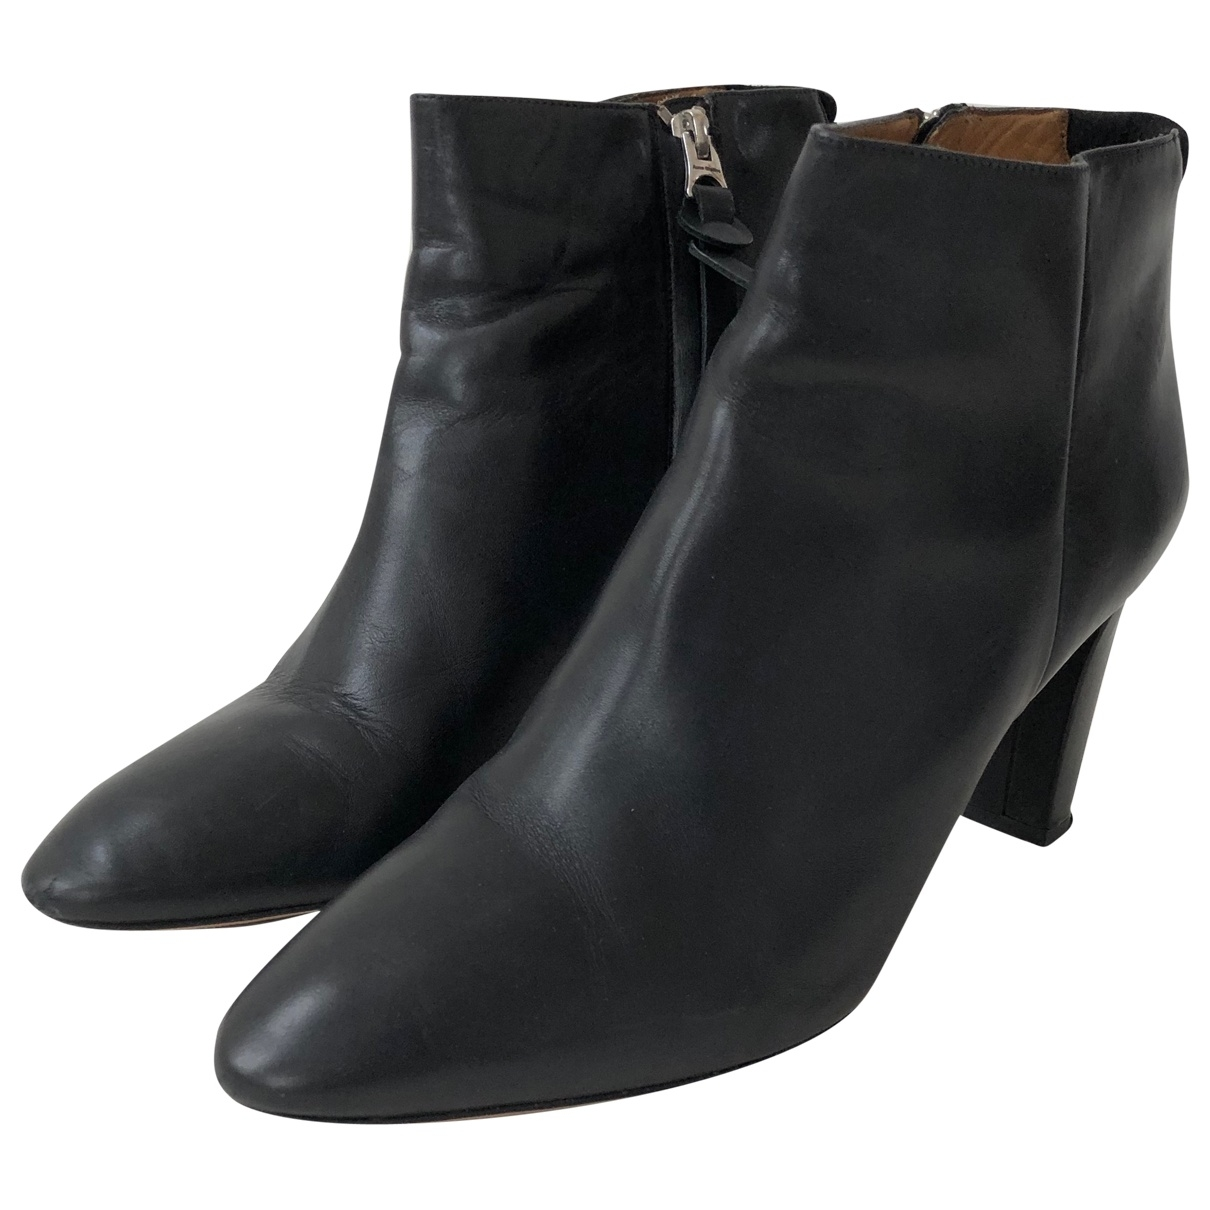 Acne Studios \N Black Leather Ankle boots for Women 41 EU